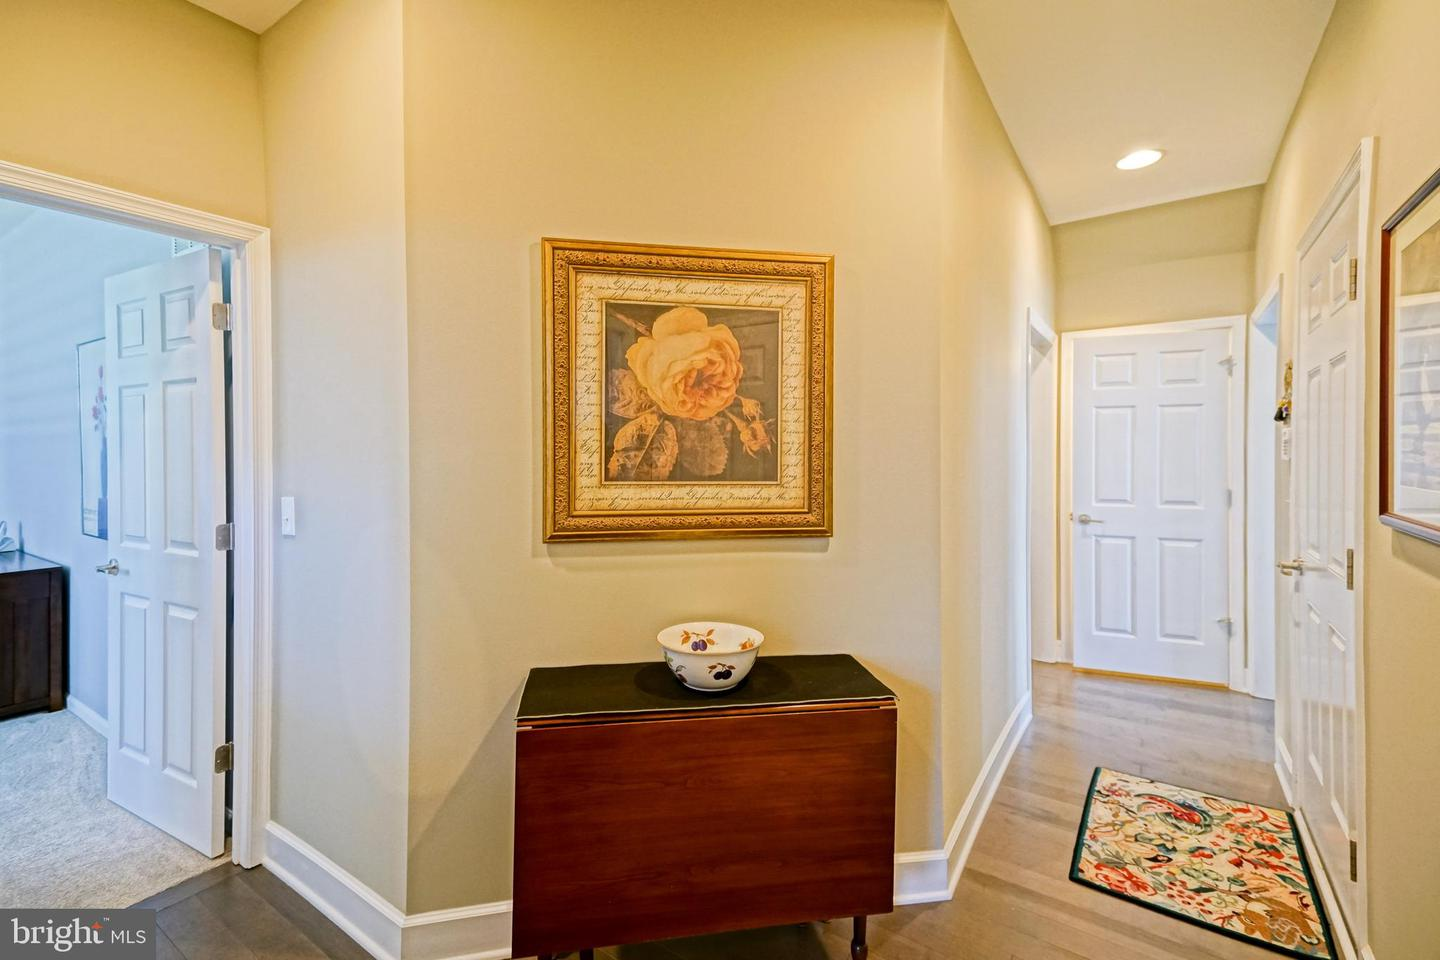 DESU139128-301667382711-2019-08-05-10-43-56 35222 Overfalls Dr N | Lewes, DE Real Estate For Sale | MLS# Desu139128  - Lee Ann Group